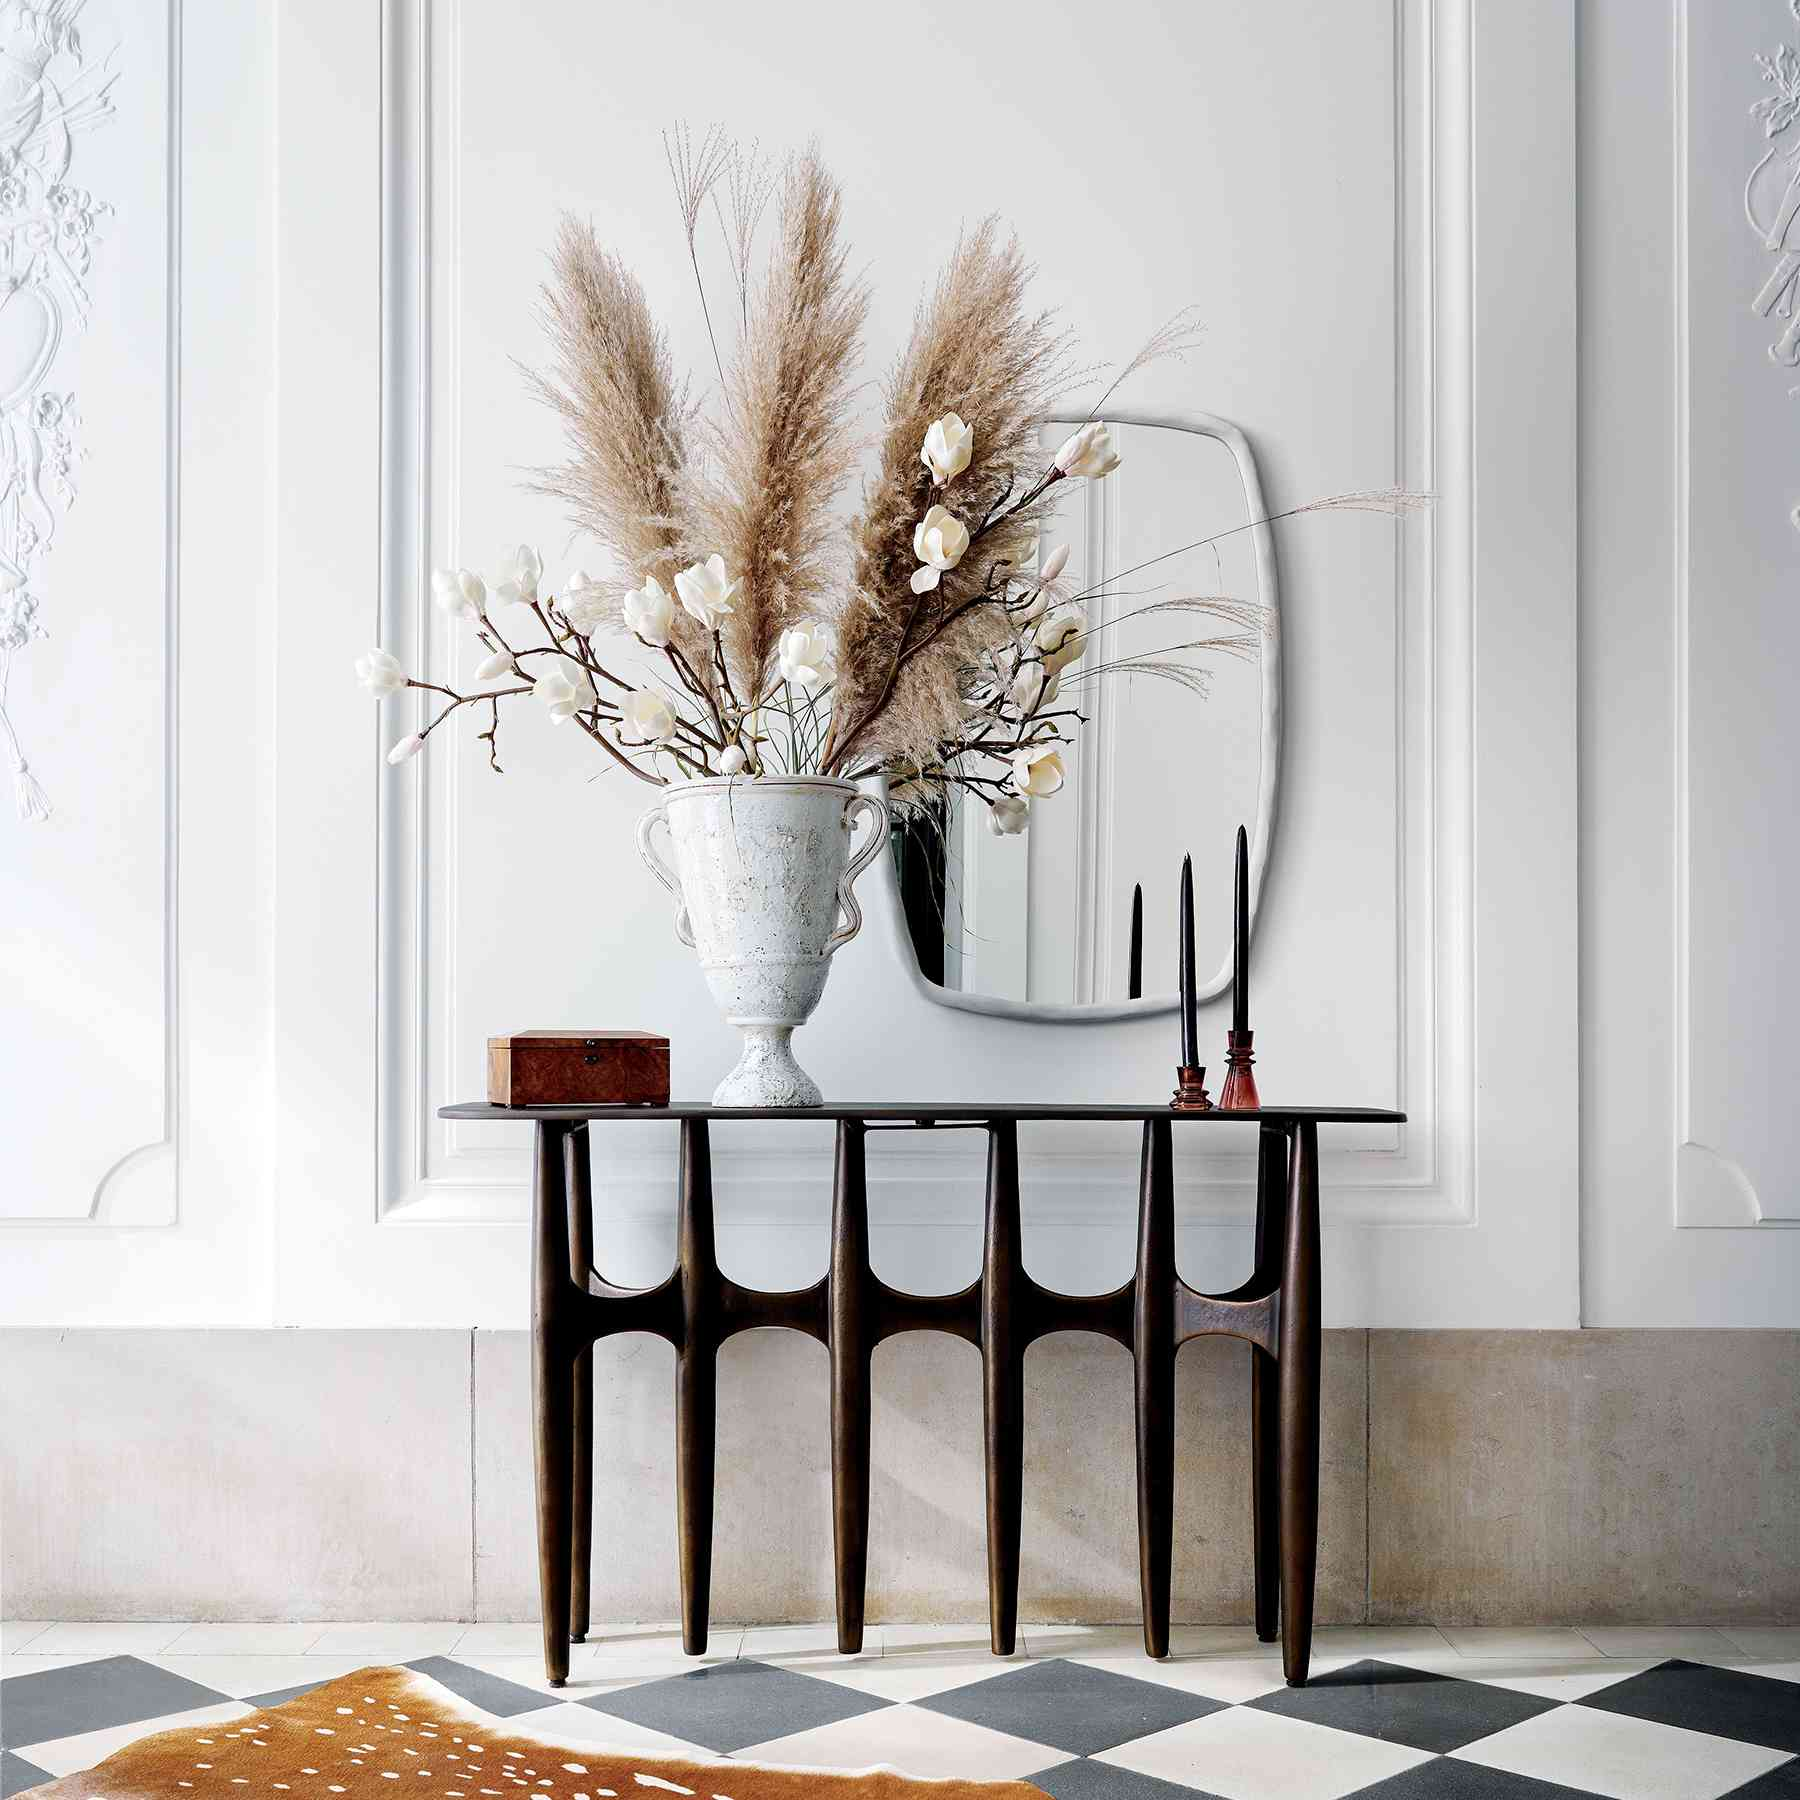 CB2 2021 Design Trends - console table with mirror and oversized dried florals